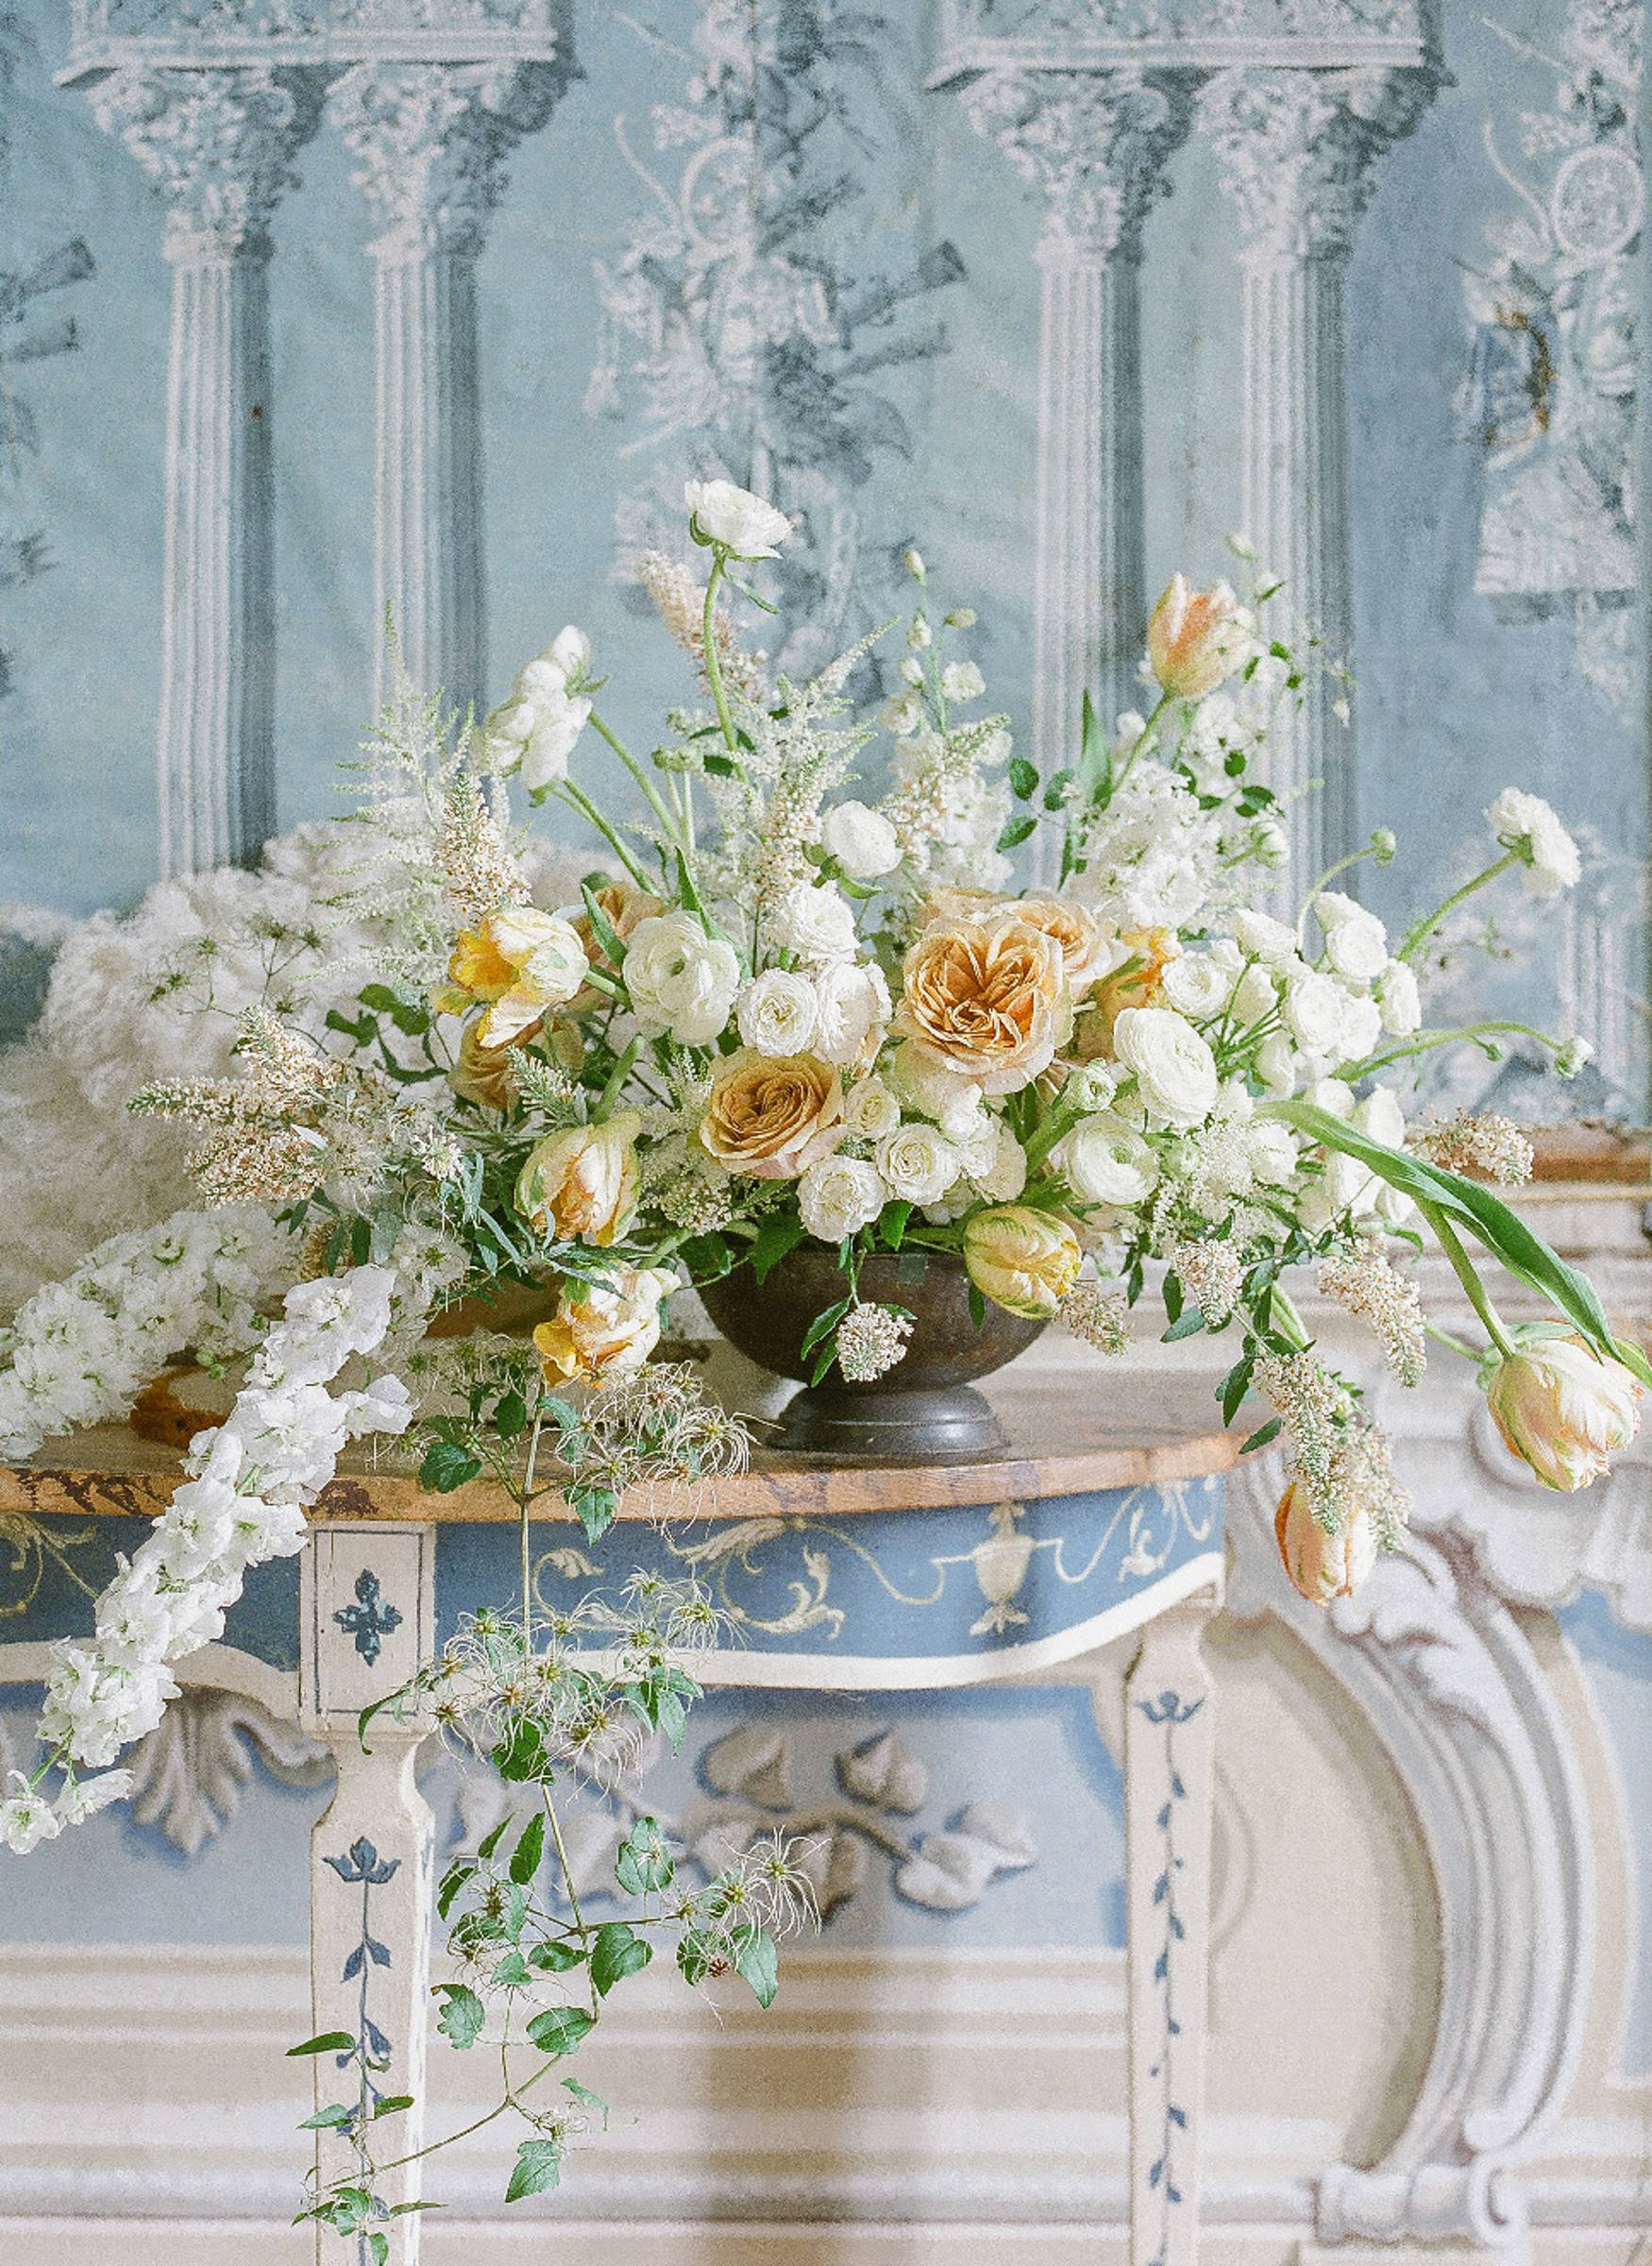 White and cream summer centerpiece with delphinium and roses - photo by Corbin Gurkin